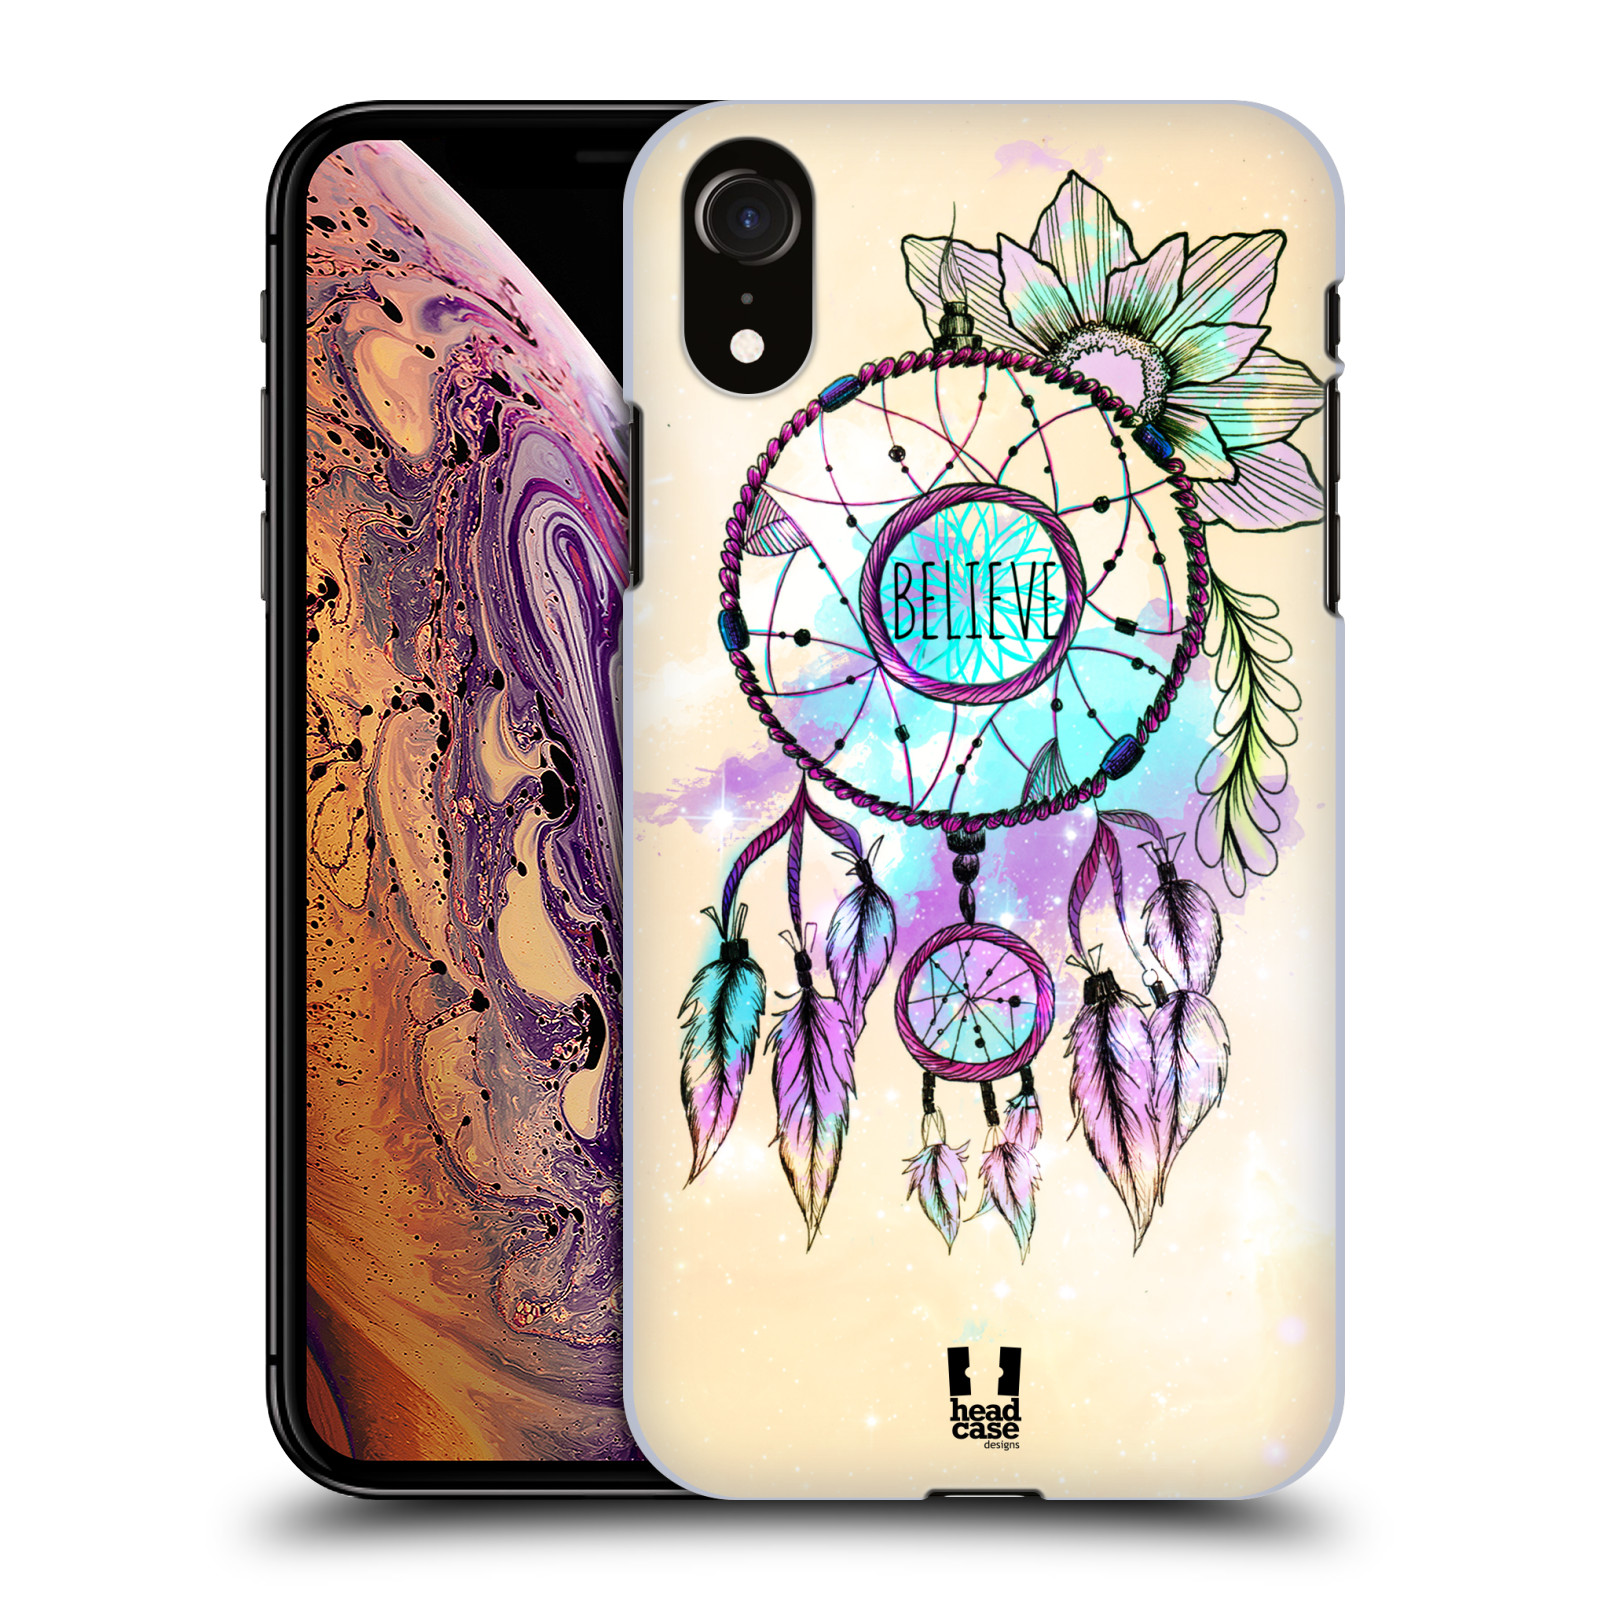 Plastové pouzdro na mobil Apple iPhone XR - Head Case - MIX BELIEVE